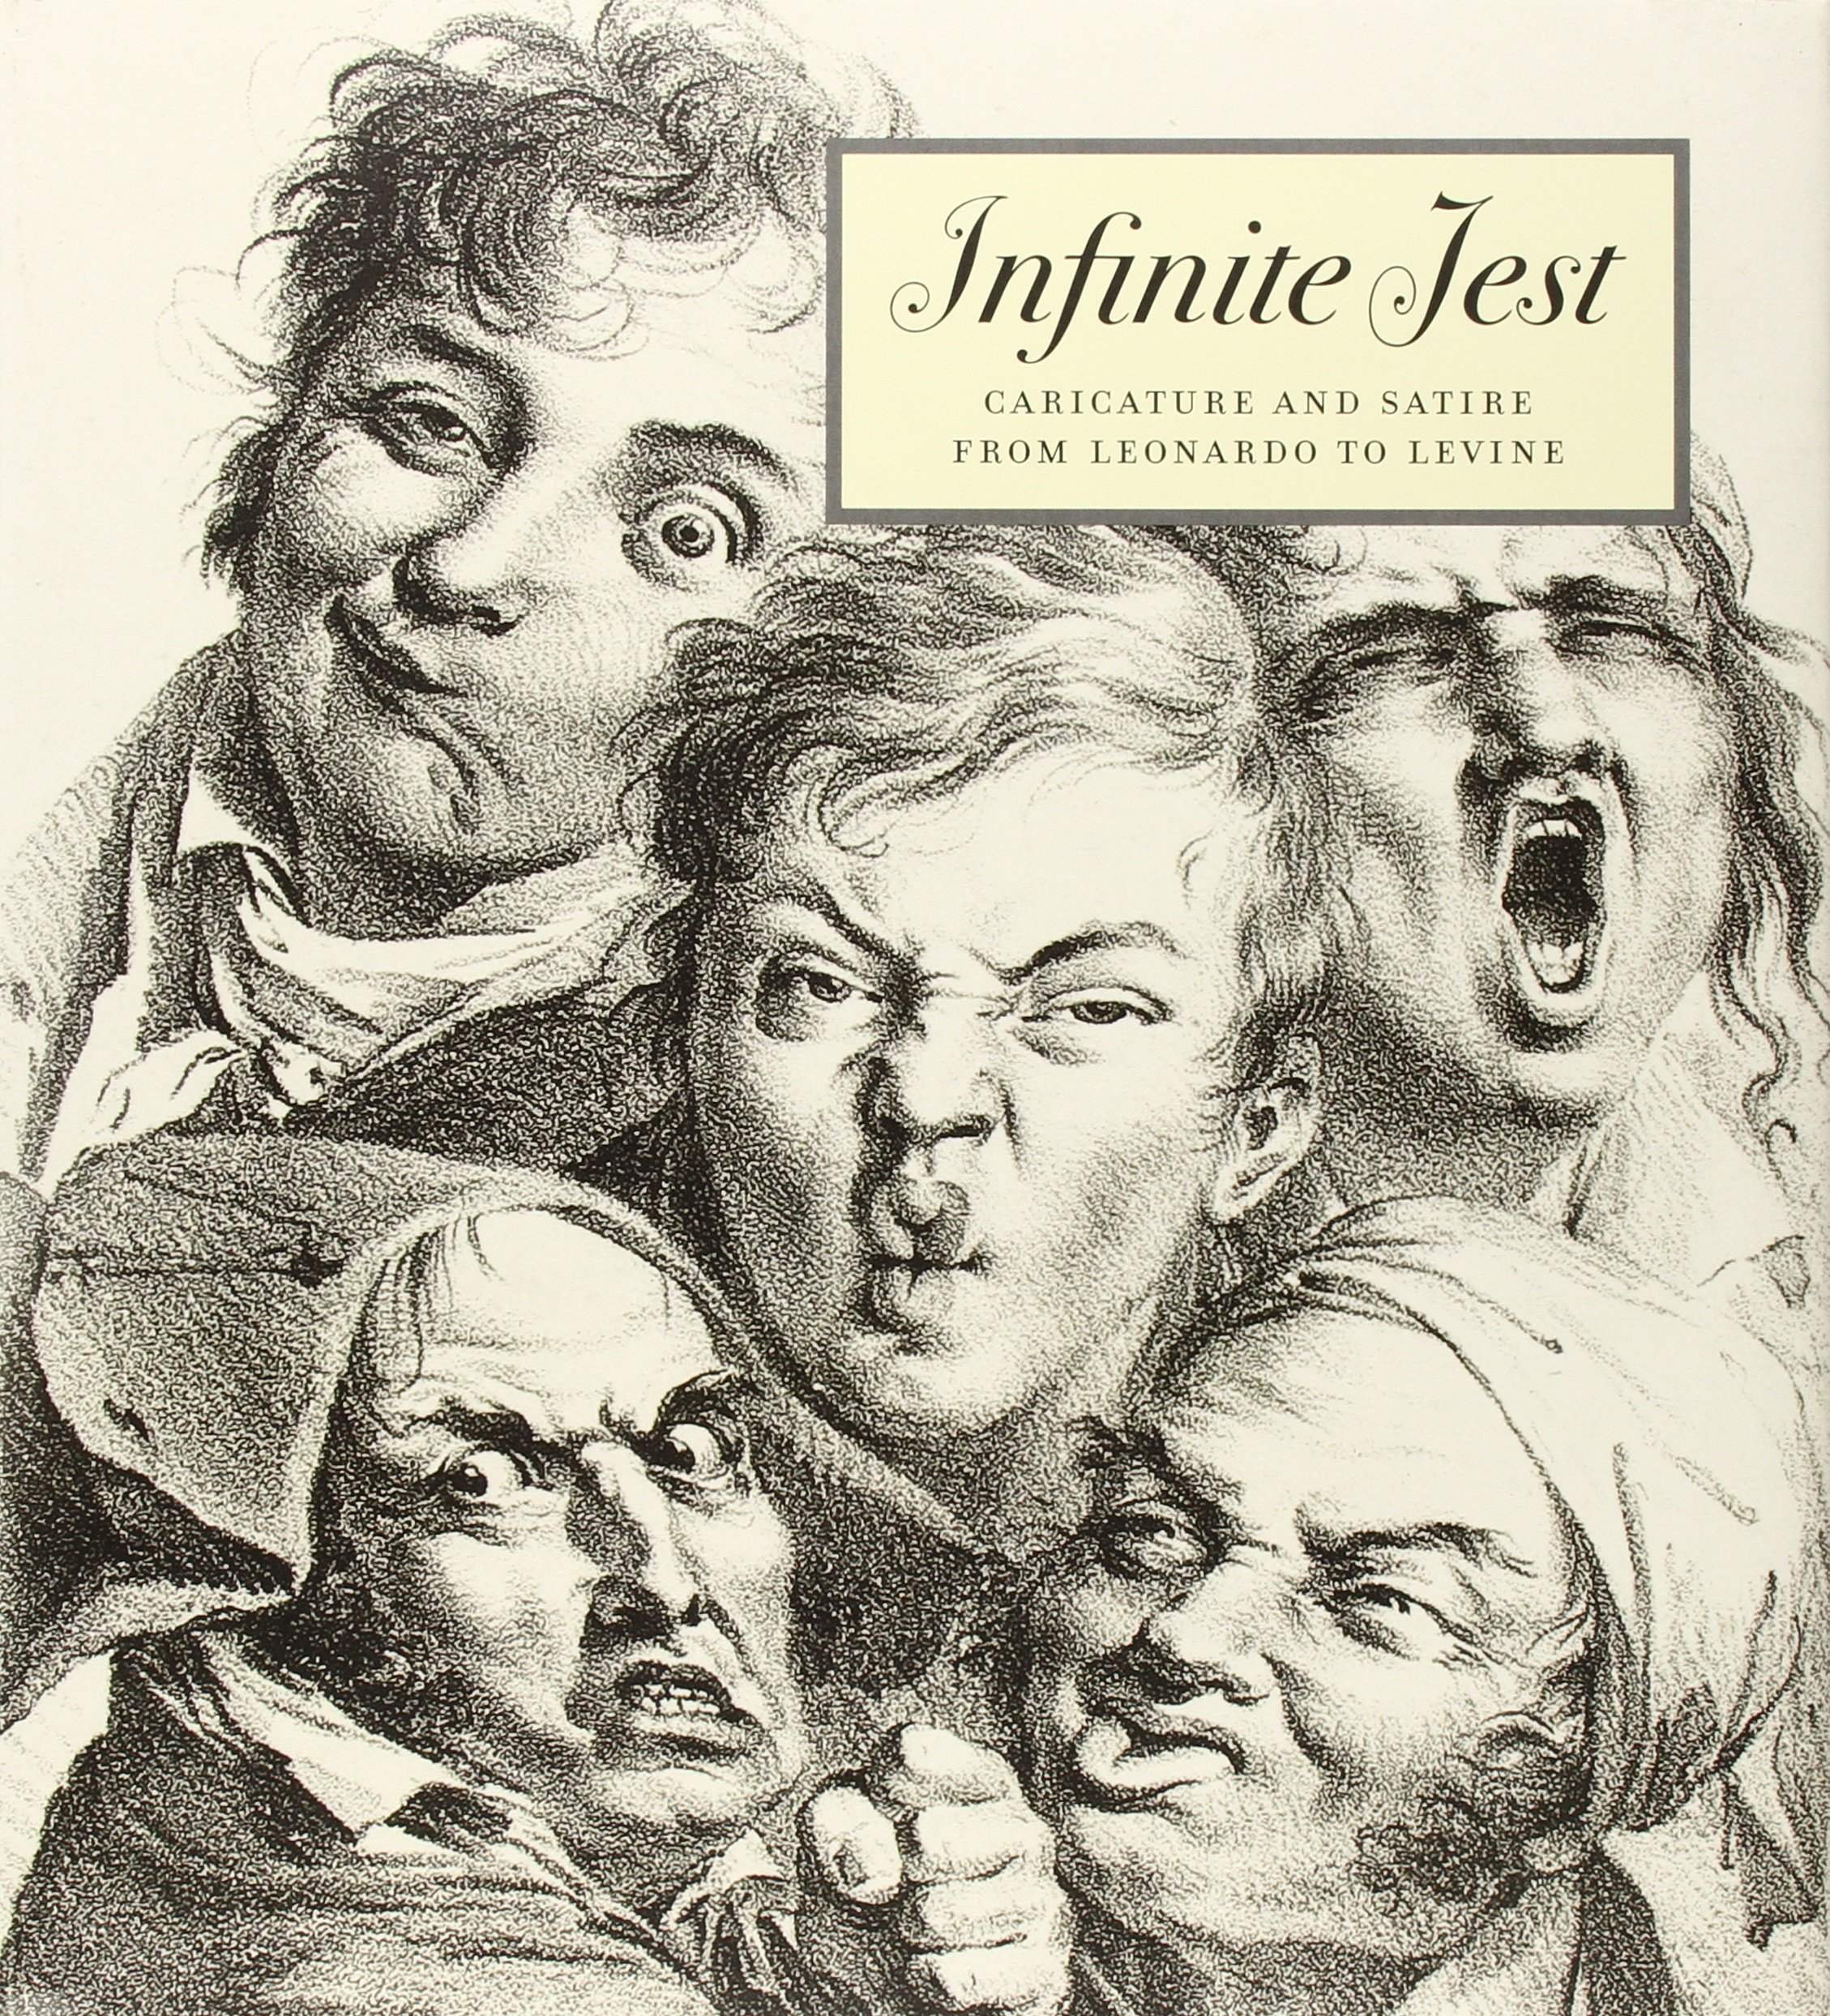 Infinite Jest: Caricature and Satire from Leonardo to Levine (Metropolitan  Museum of Art): Constance C. McPhee, Nadine M. Orenstein: 9780300175813: ...